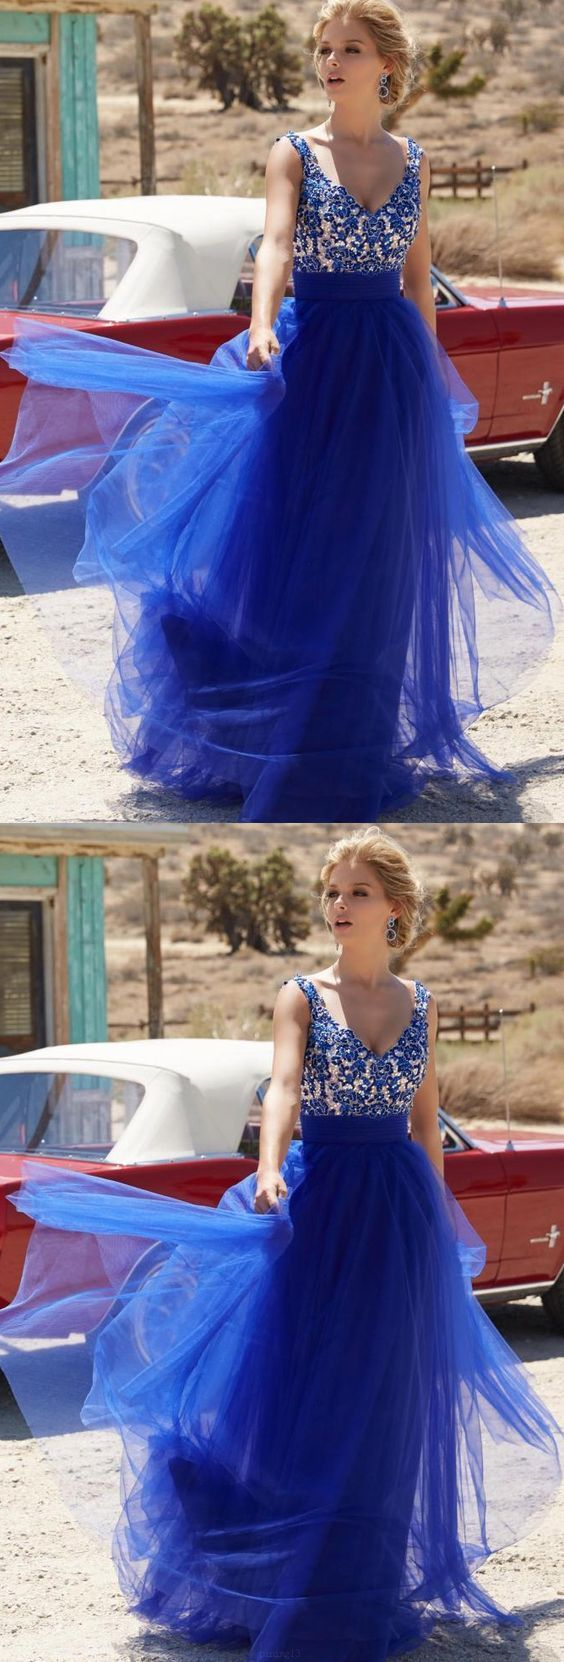 Royal blue evening prom dress dazzling long evening dresses with